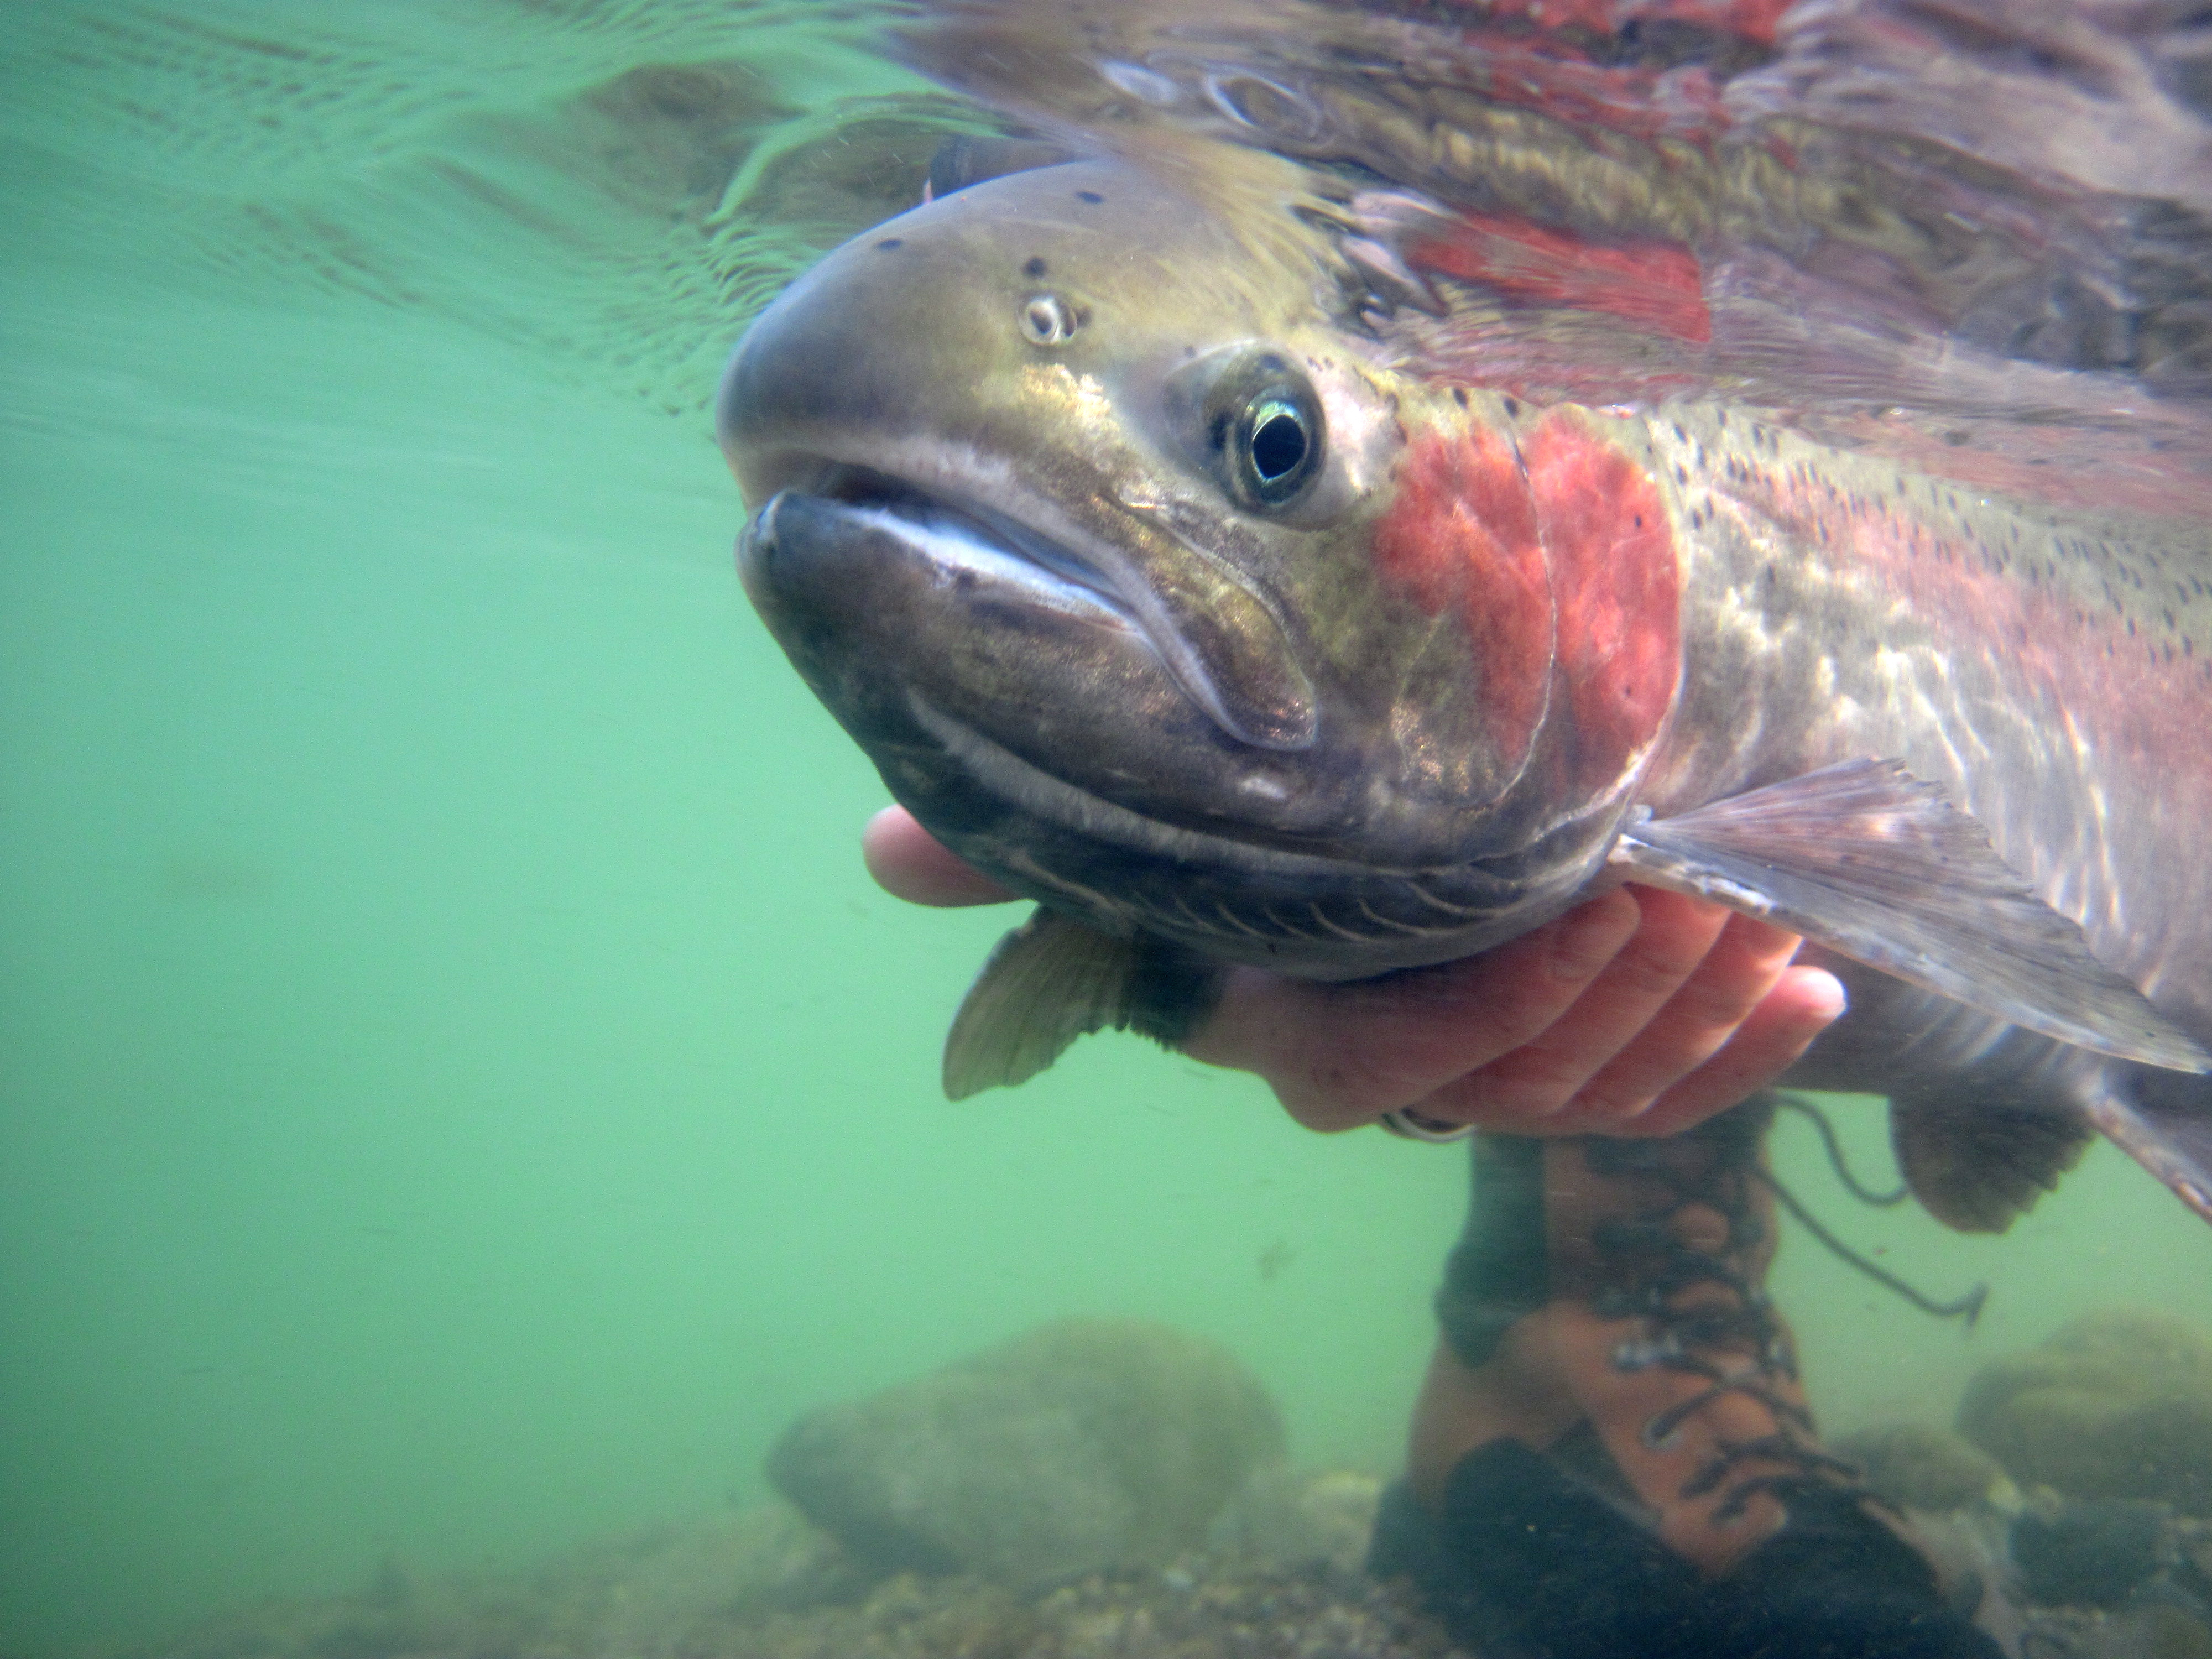 steelhead being held underwater in the Salmon drainage March 2011